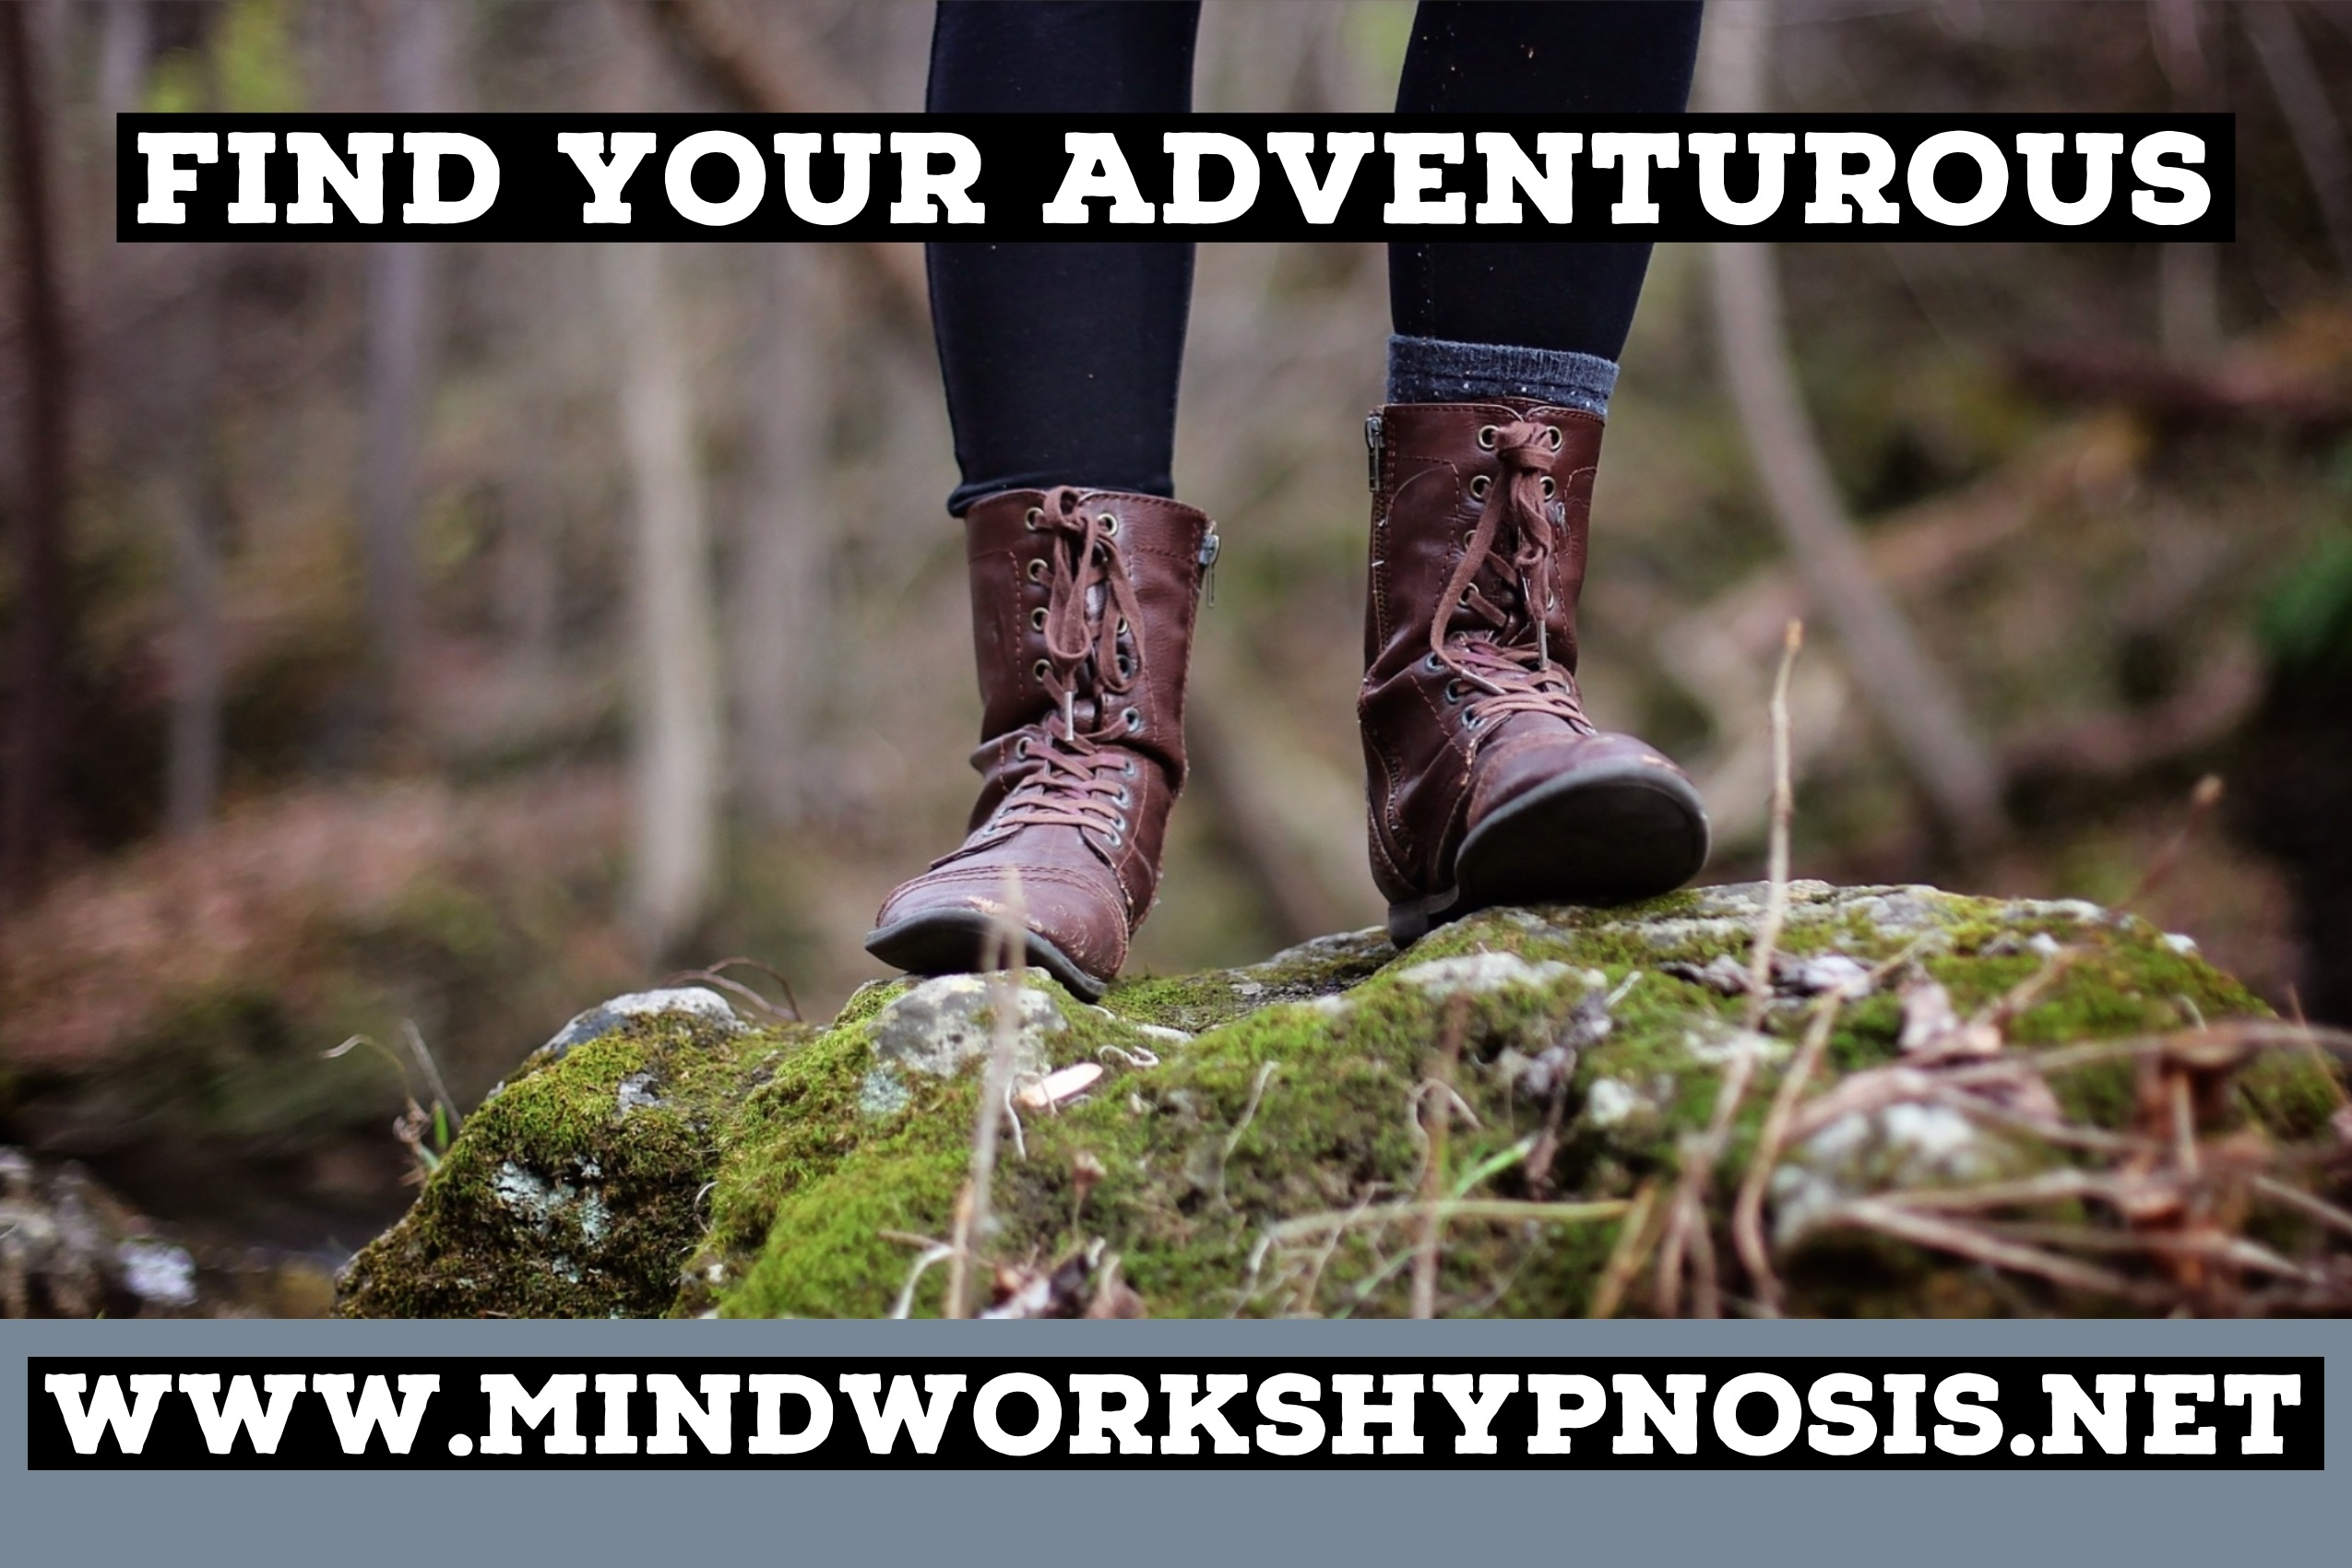 Find your adventurous self with Mindworks Hypnosis & NLP.